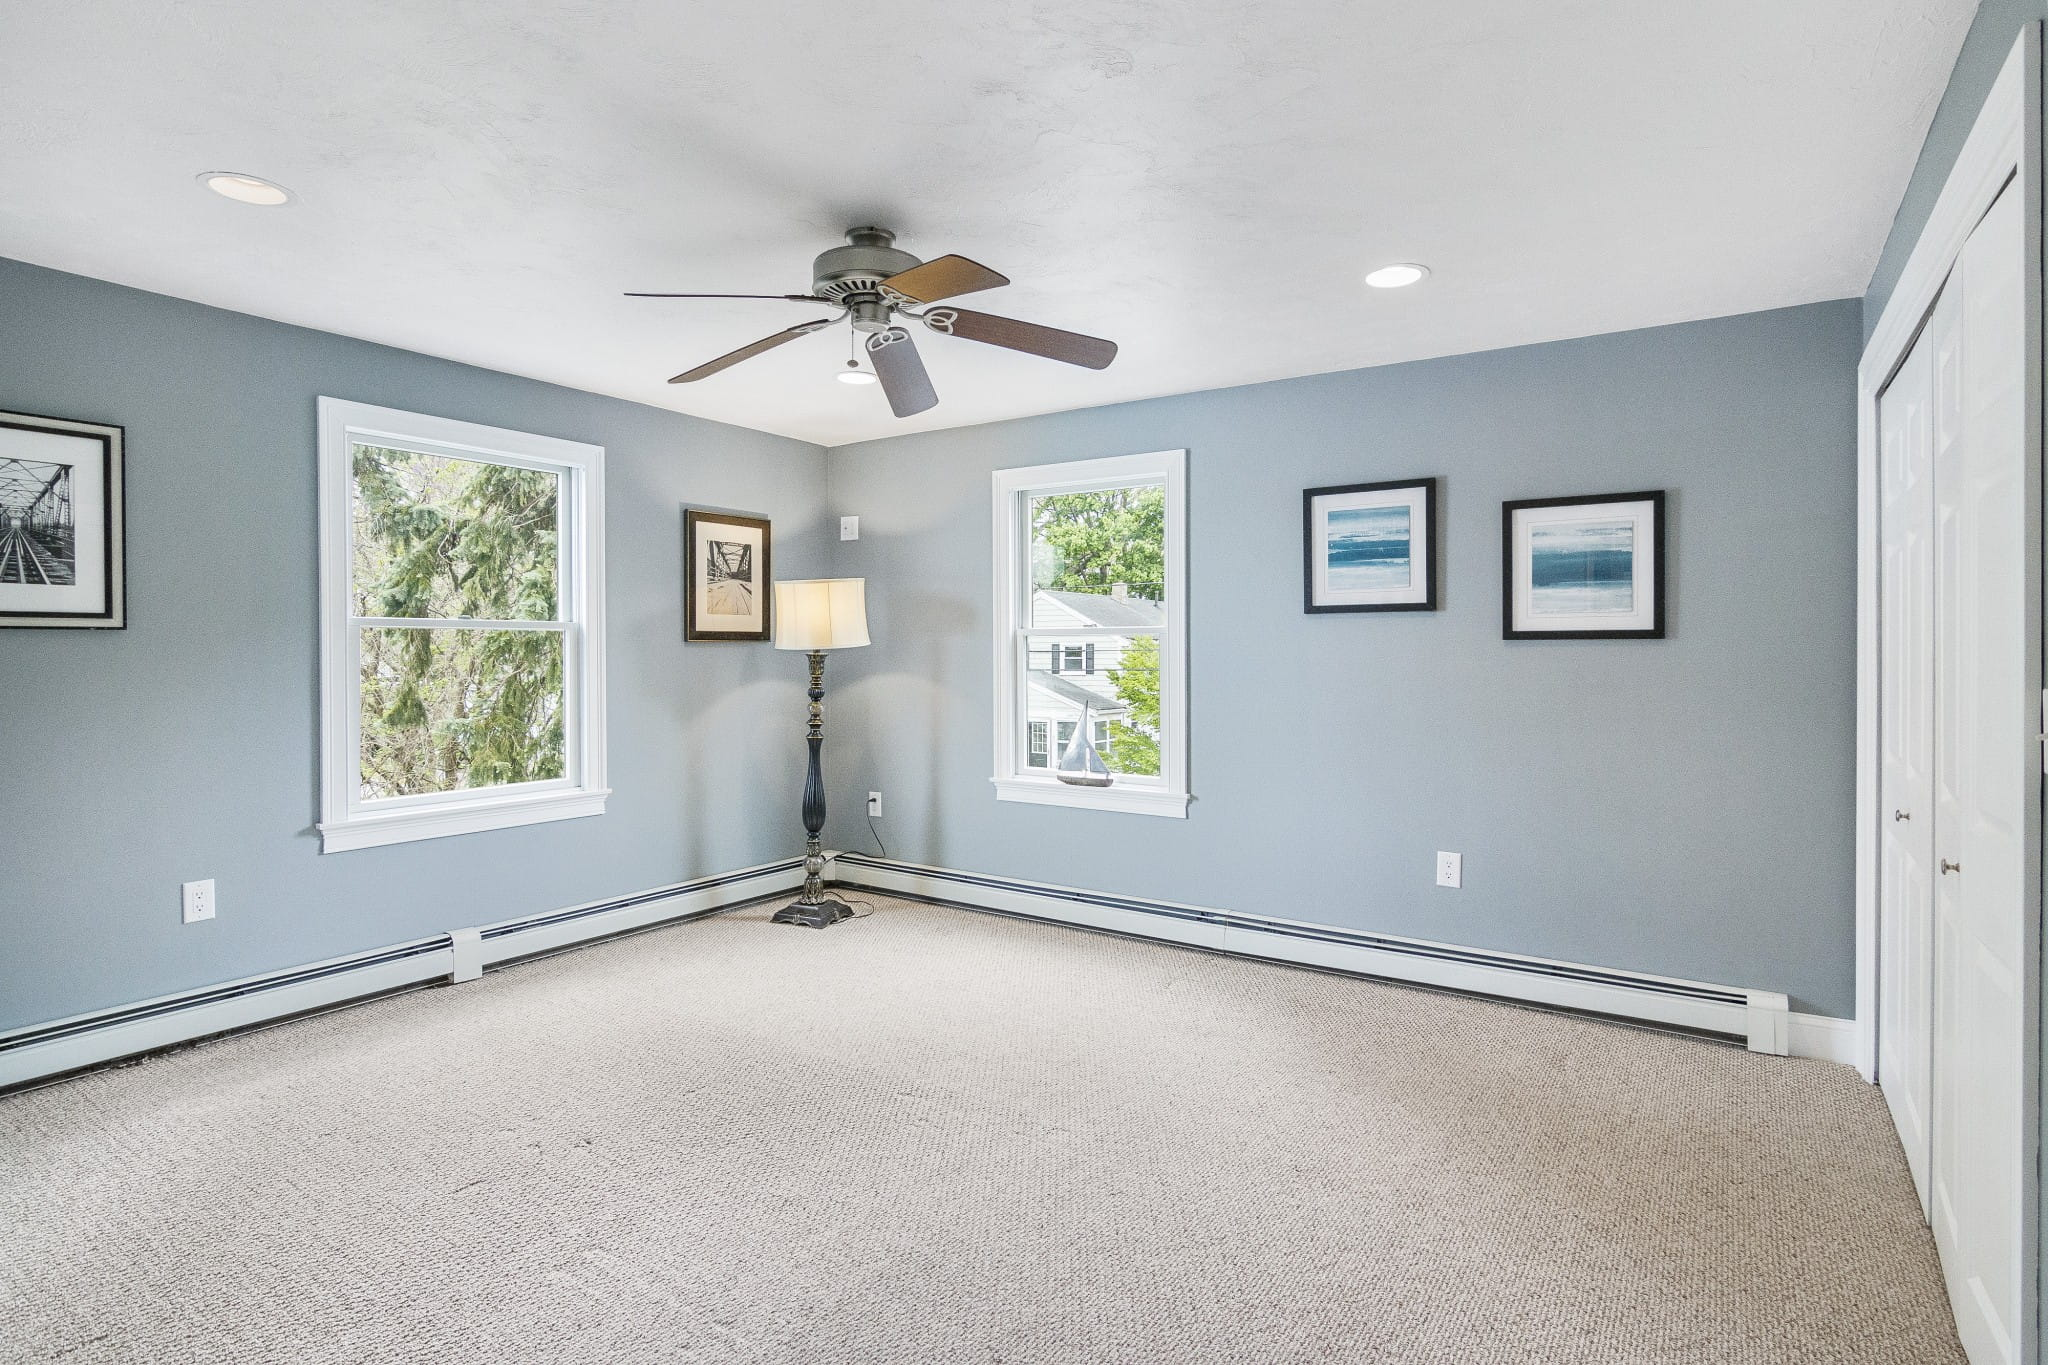 Real Estate Photography in Quincy - MA - USA - Bedroom View